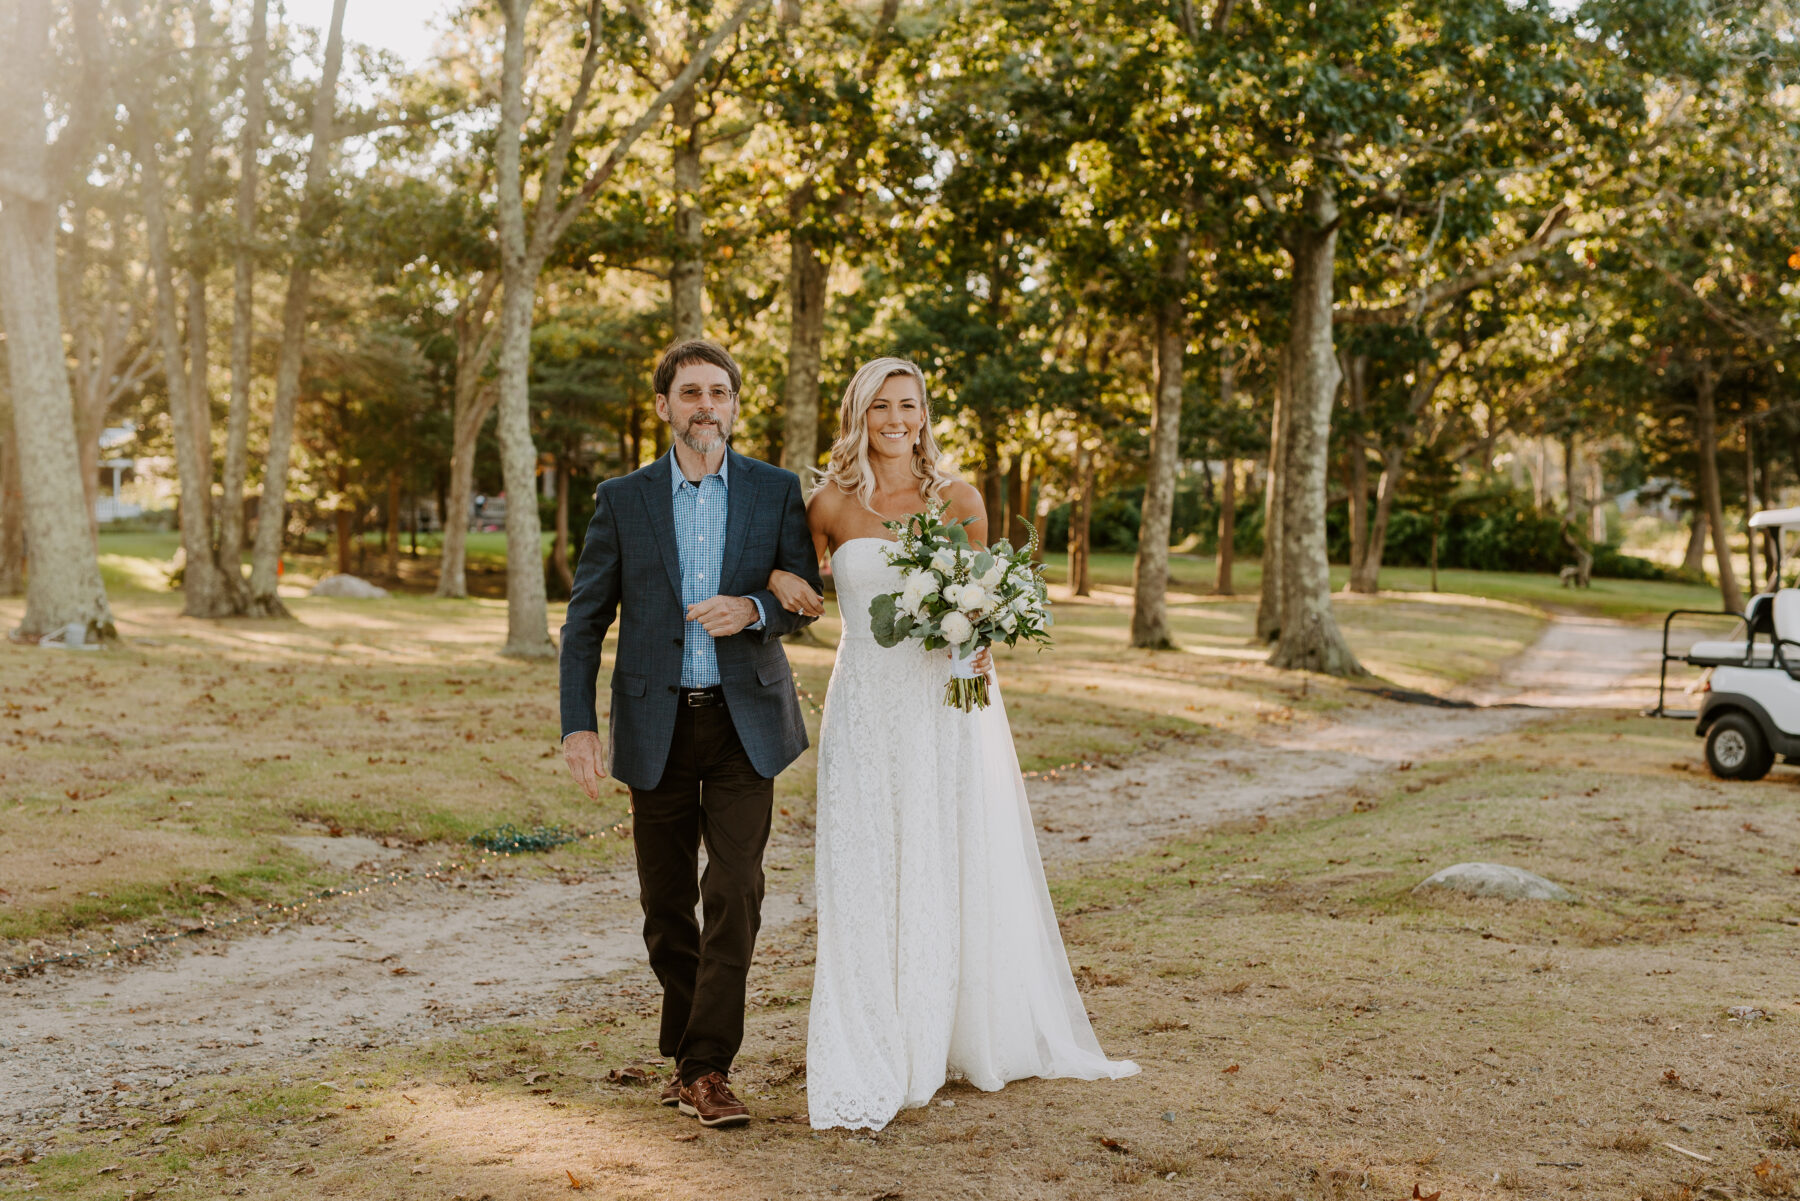 Outdoor Nonquitt Wedding Grace and Andrew Blueflash Photography 15